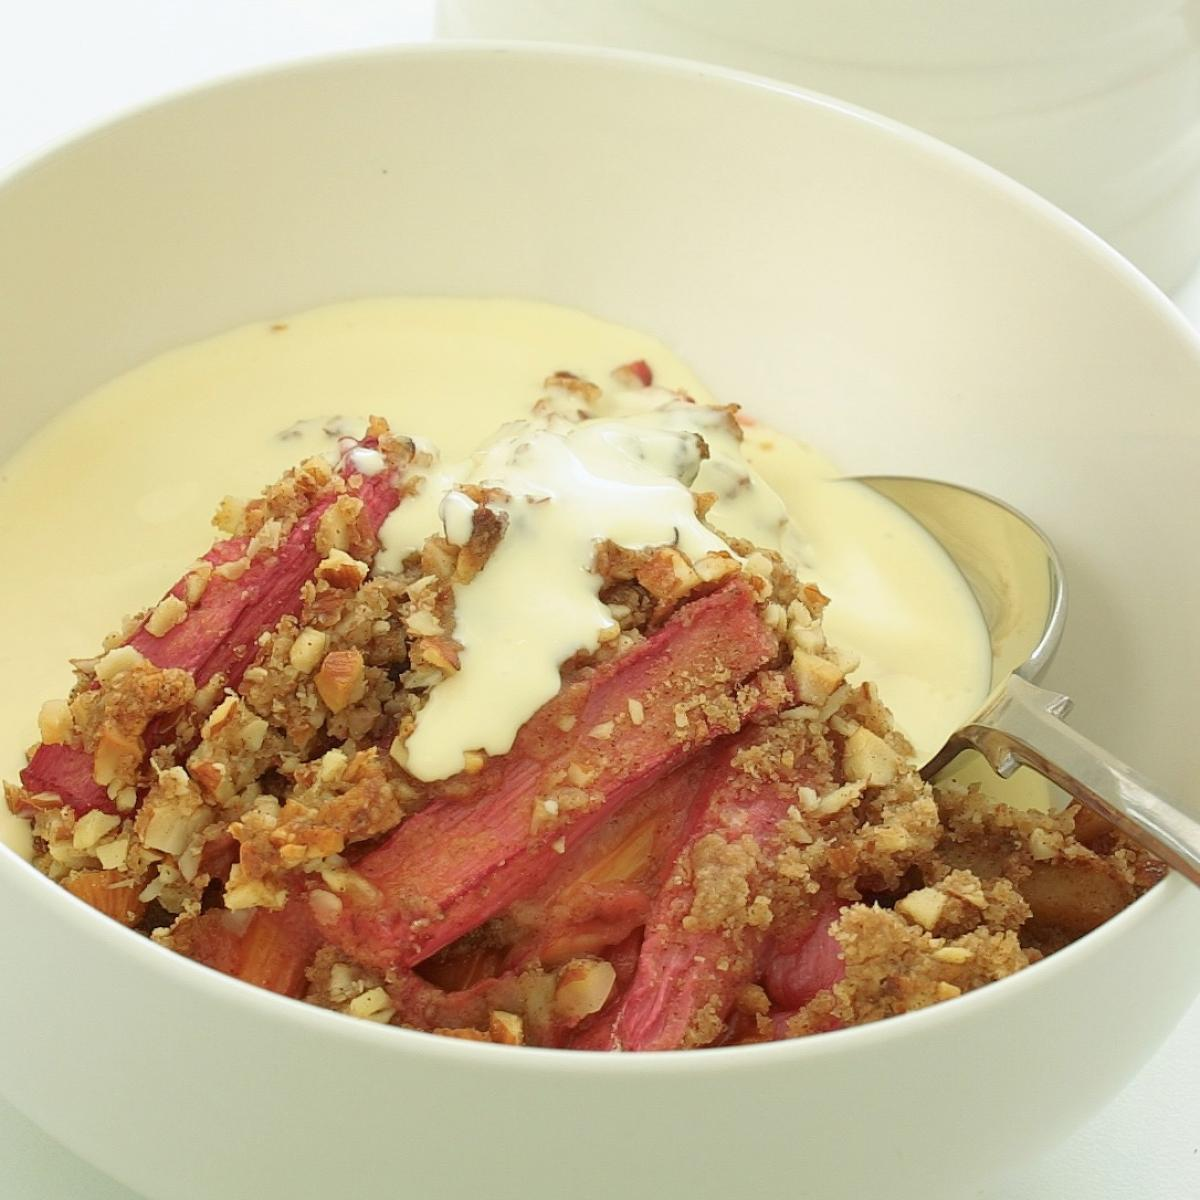 A picture of Delia's Rhubarb, Almond and Ginger Crumble recipe